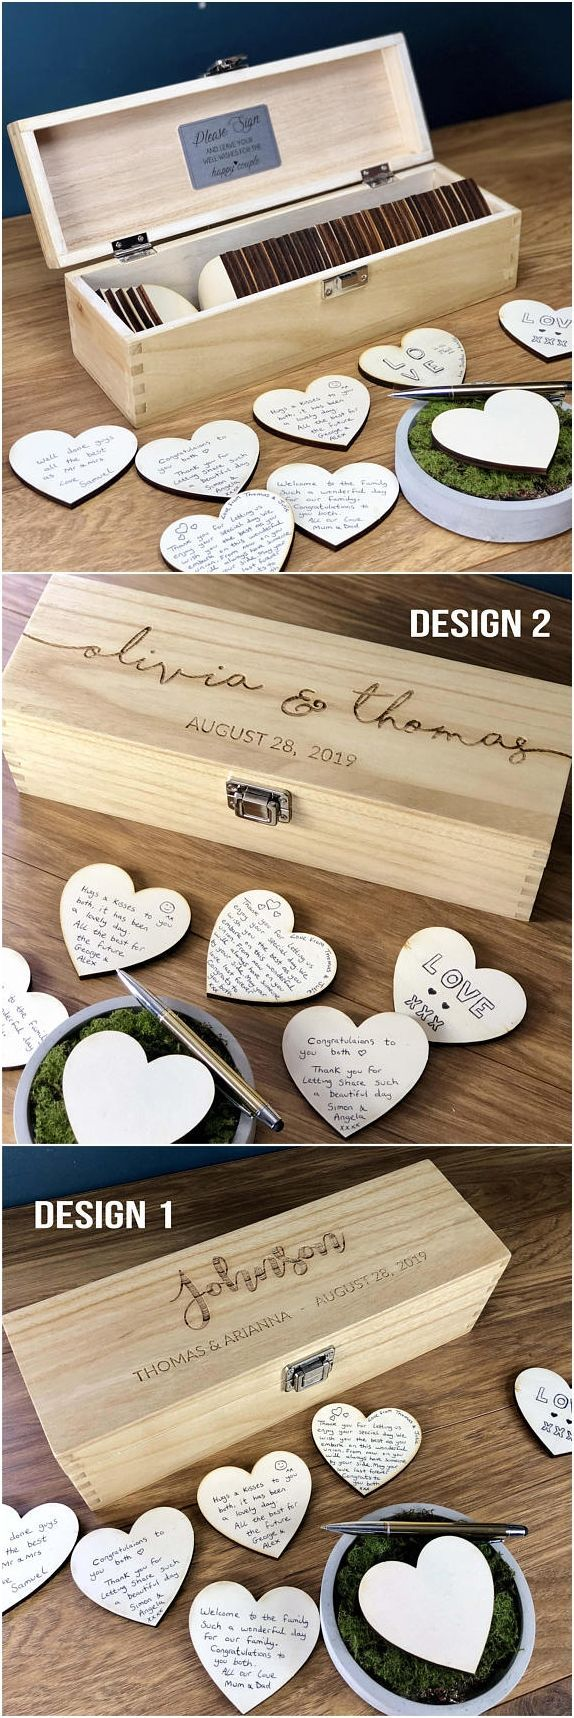 Wedding Guest Book - GuestBook Alternatives - Guestbook Sign - Personalised Custom Guest Book - Rustic Wedding Box - Hearts - Unique Ideas - #Alternatives #Book #Box #Custom #Guest #guestbook #hearts #Ideas #Personalised #rustic #sign #Unique #Wedding #caixasdemadeira